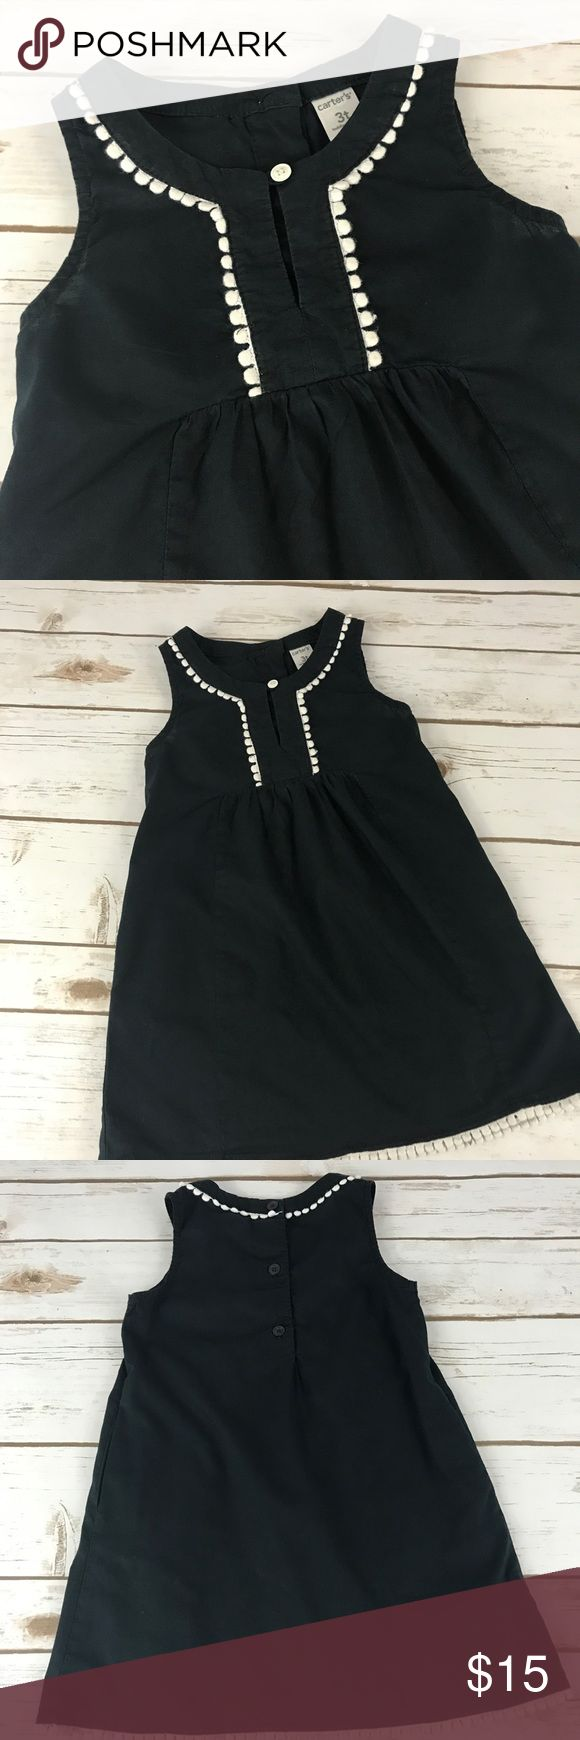 Carter's Blue Dress size 3T This dress is a dark blue with white trim and hidden pockets on the sides. In great condition. Carter's Dresses Casual